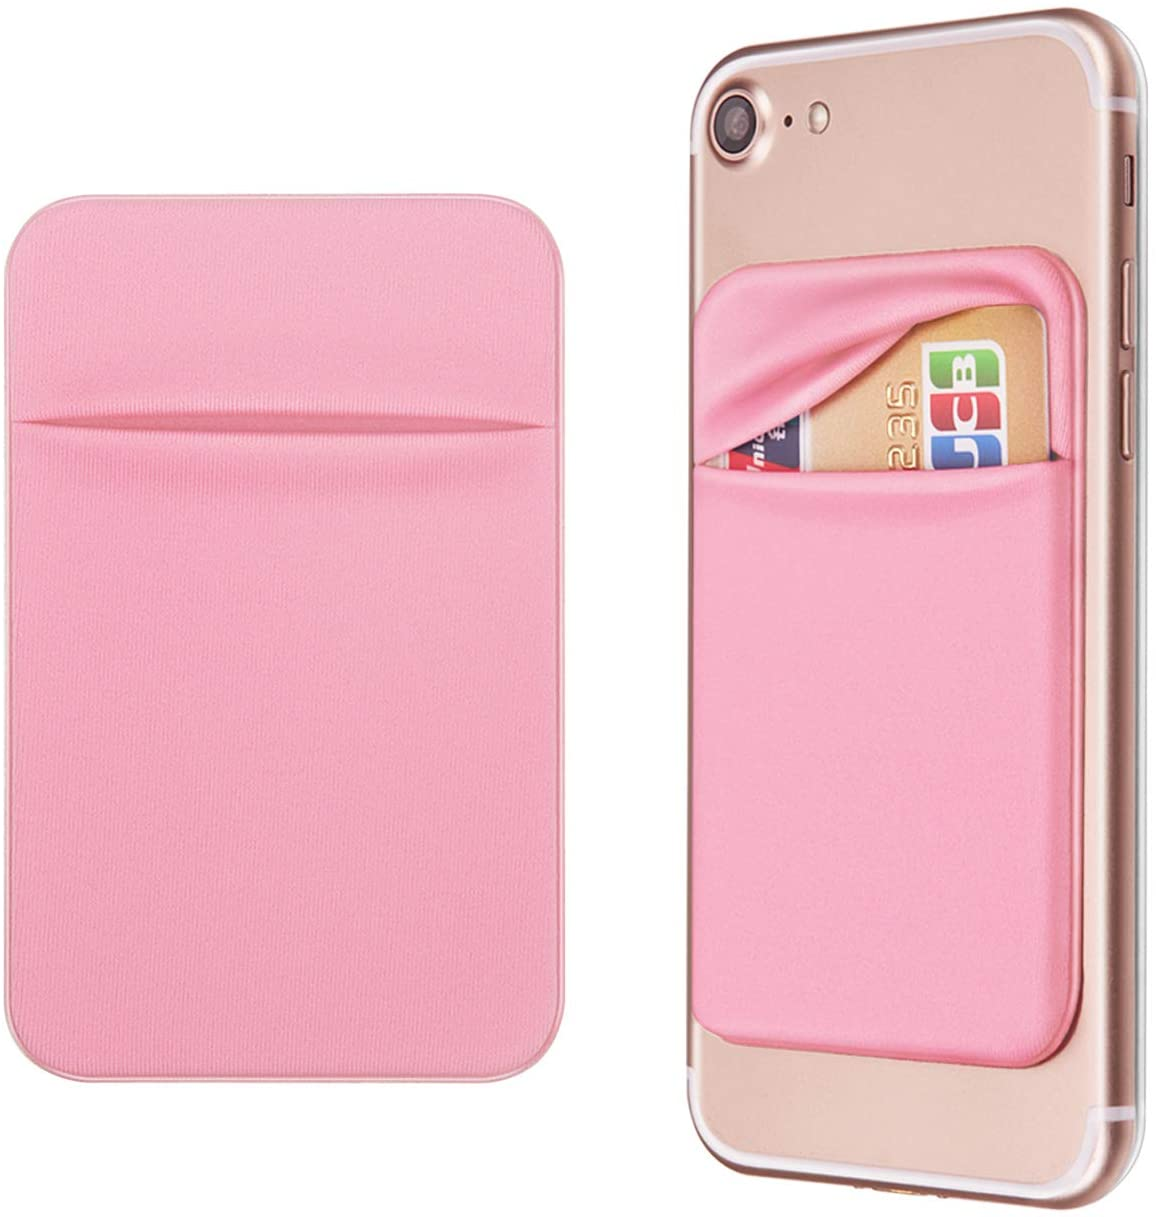 OBVIS Cell Phone Pocket Self Adhesive Card Holder Stick On Wallet Sleeve with 3M Adhesive RFID Card ID Credit Card ATM Card Holder for iPhone Android 2 Pack Pink